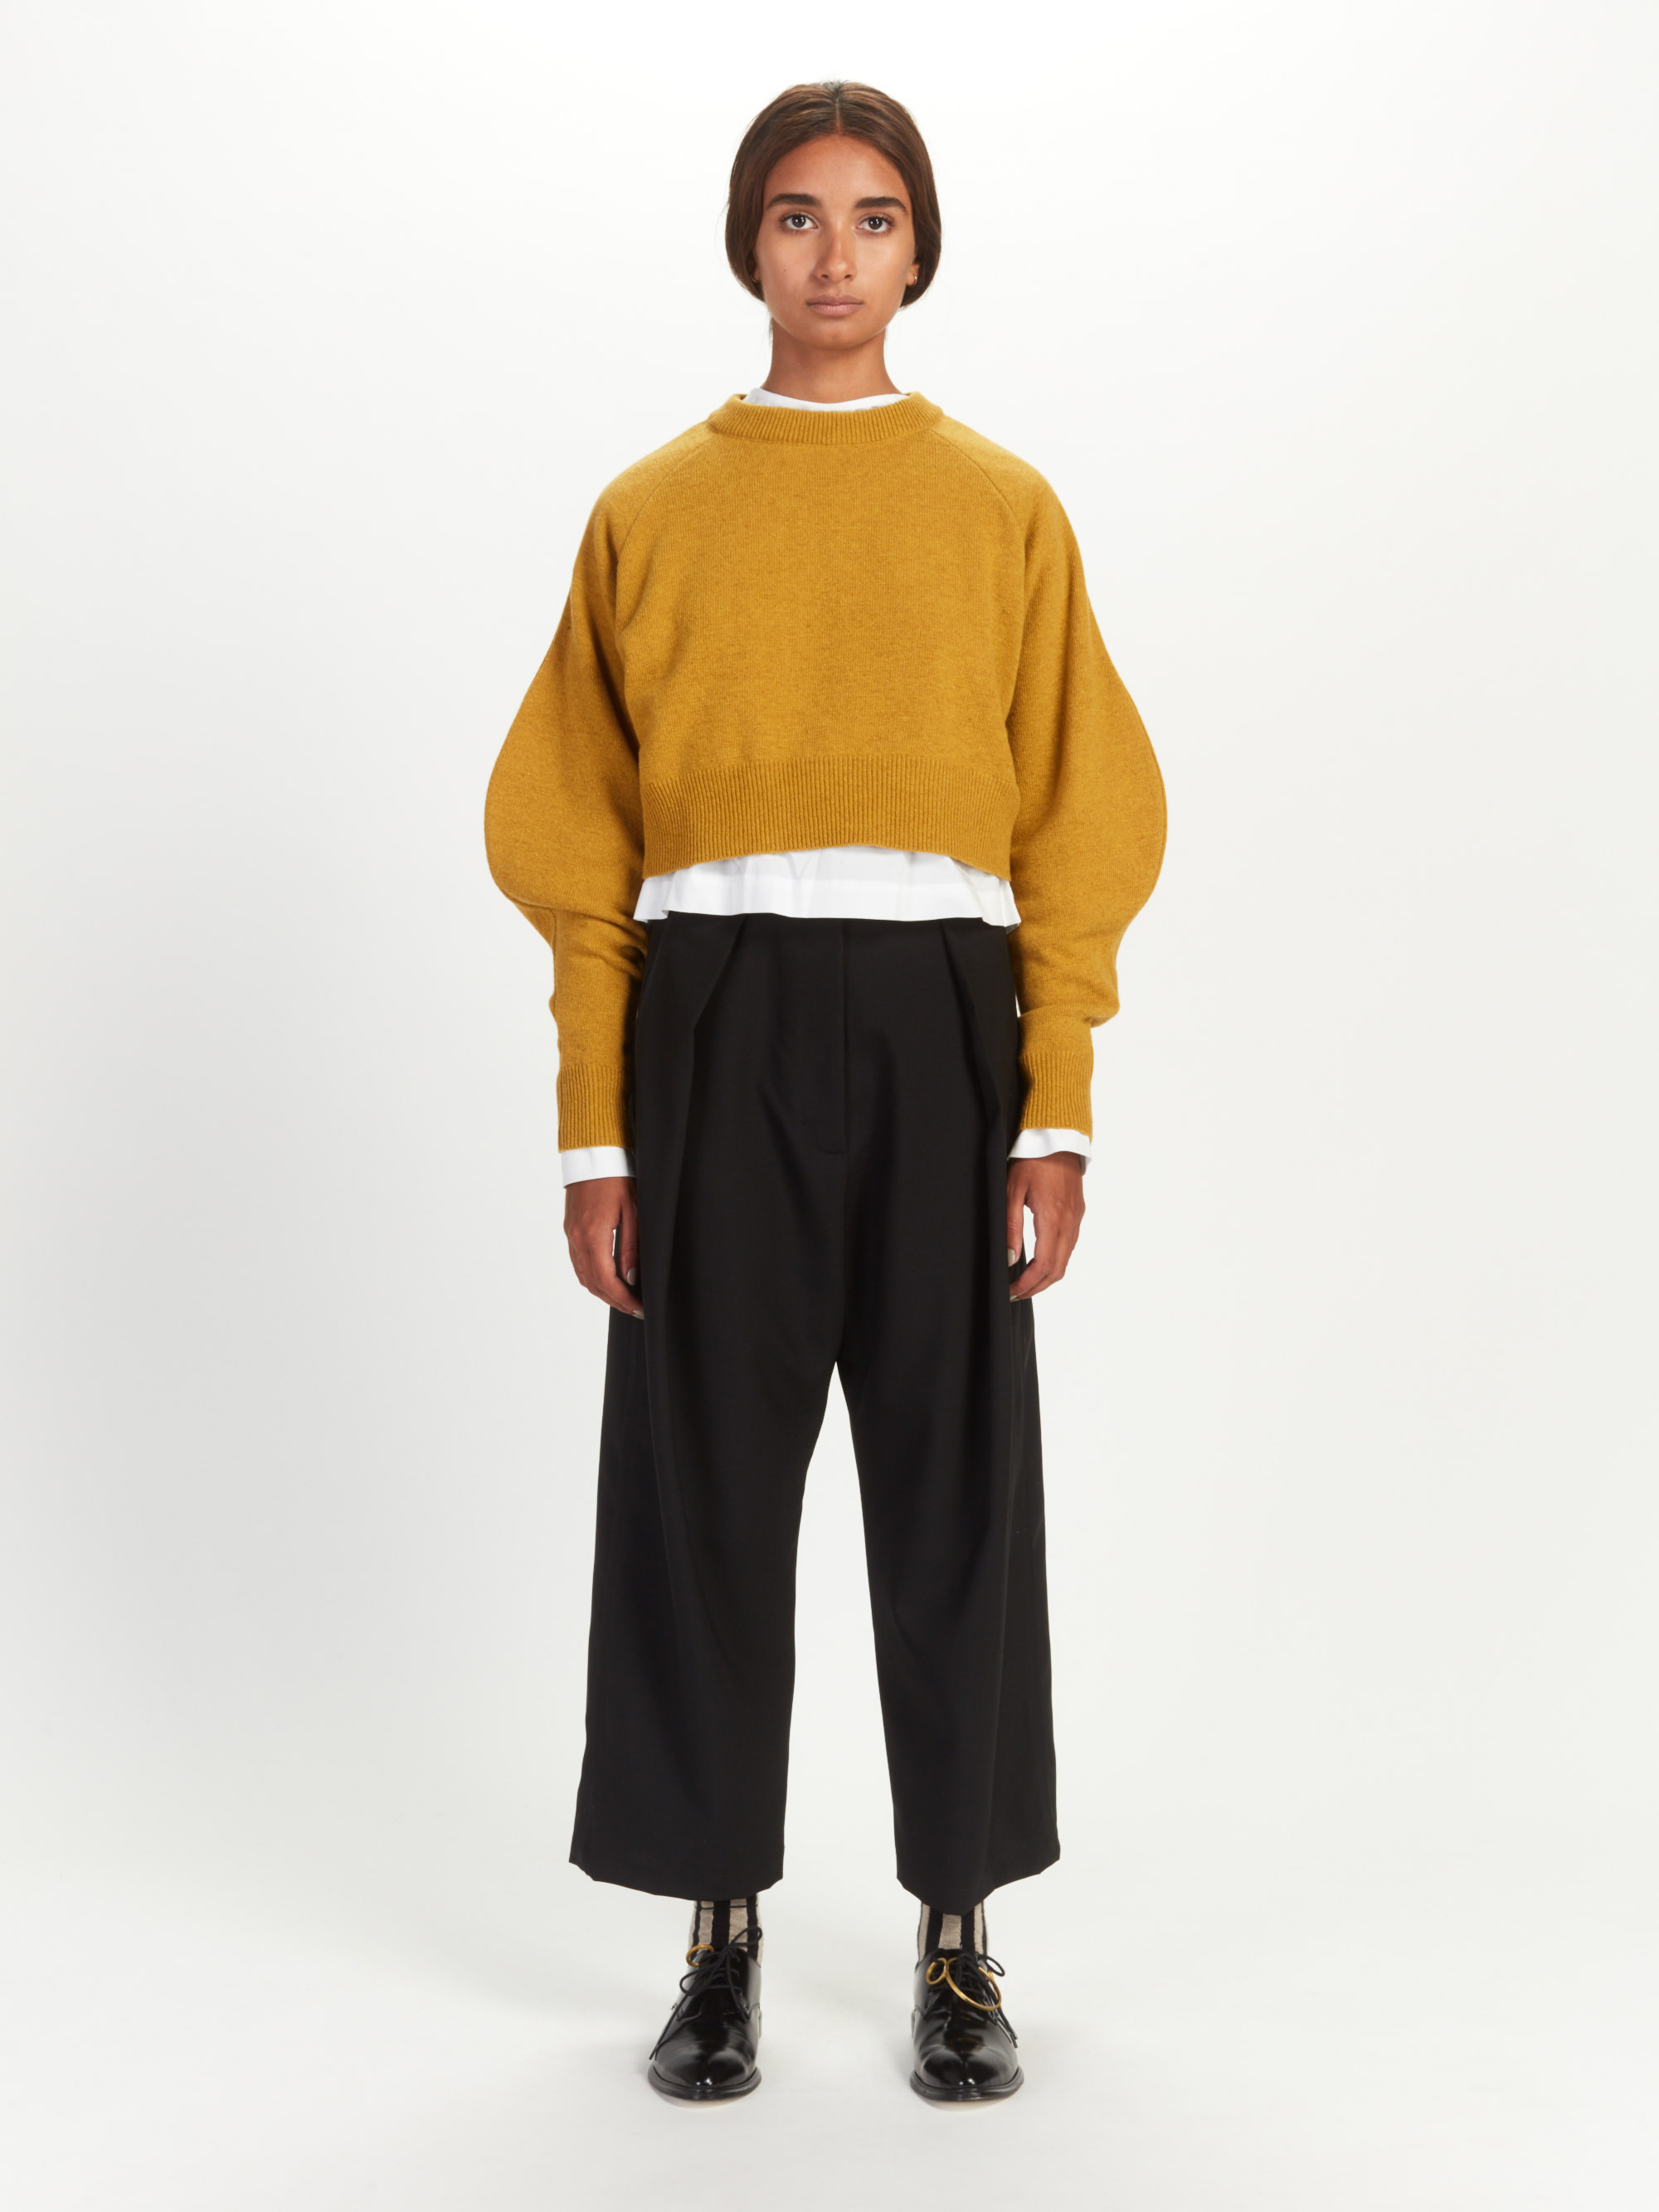 jt_sweater-woolf_25-16-2019__picture-3632